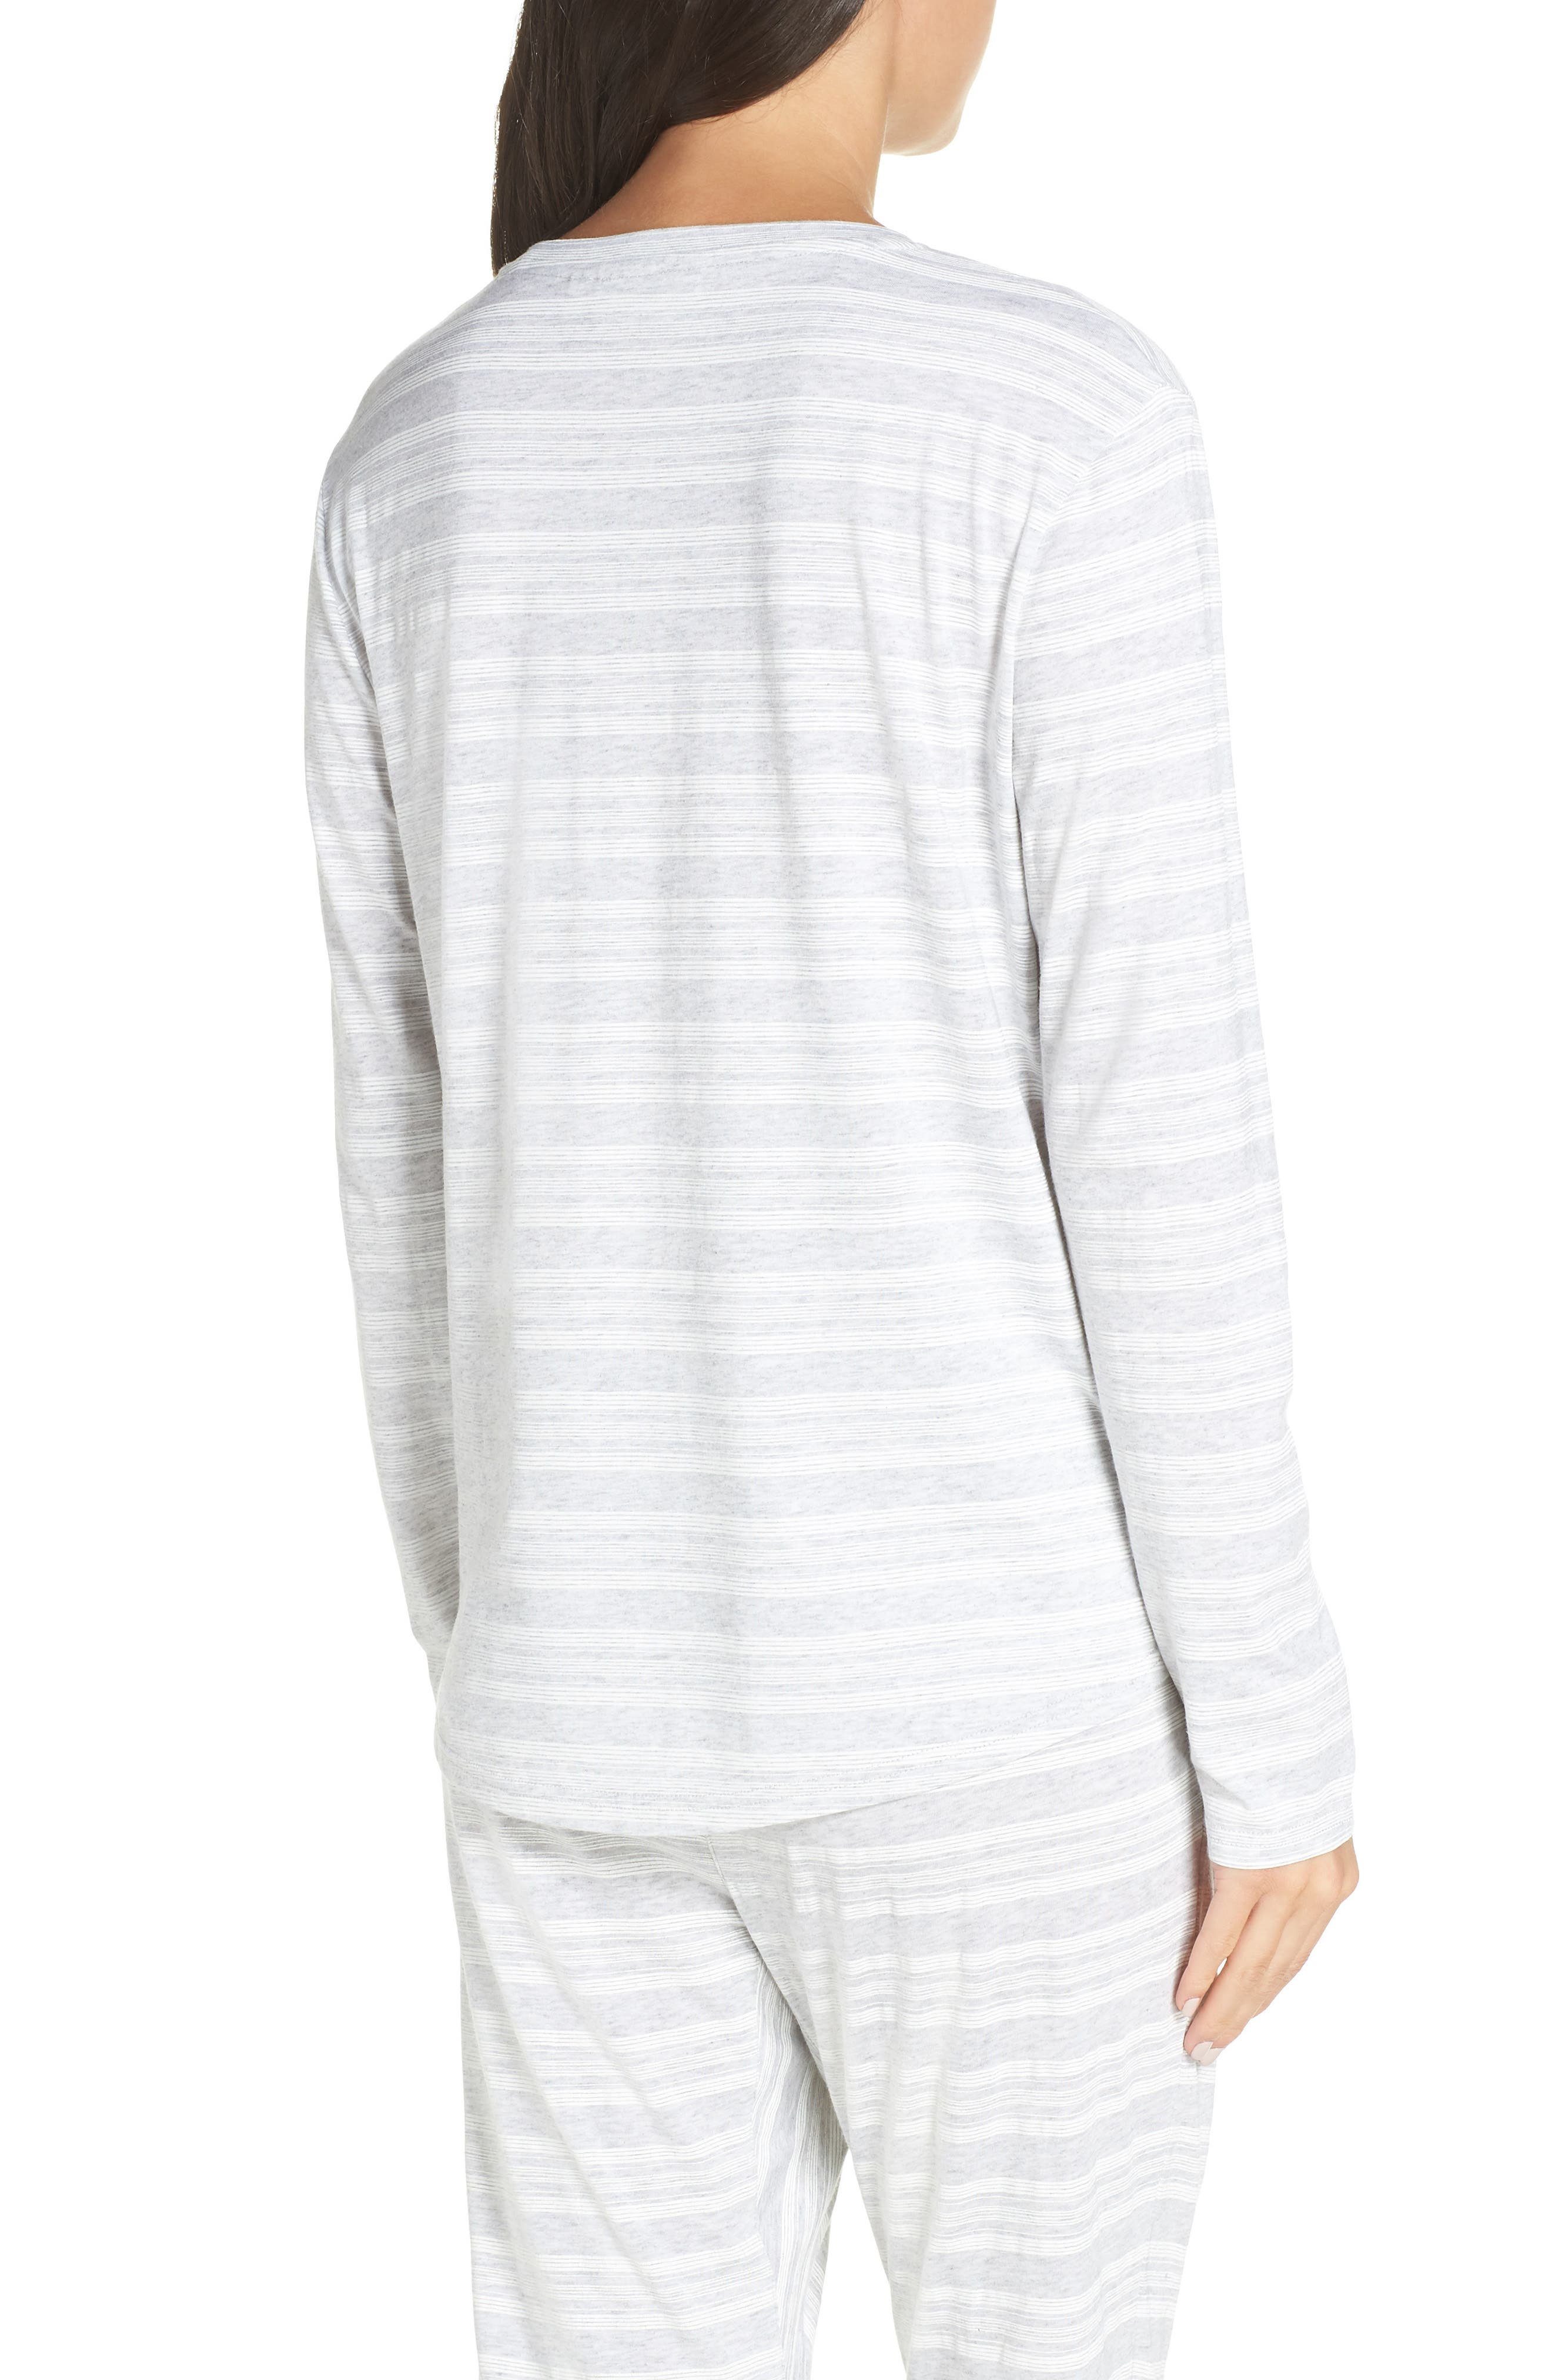 CHALMERS,                             Issy Pajama Top,                             Alternate thumbnail 2, color,                             LOLLY STRIPE WHITE